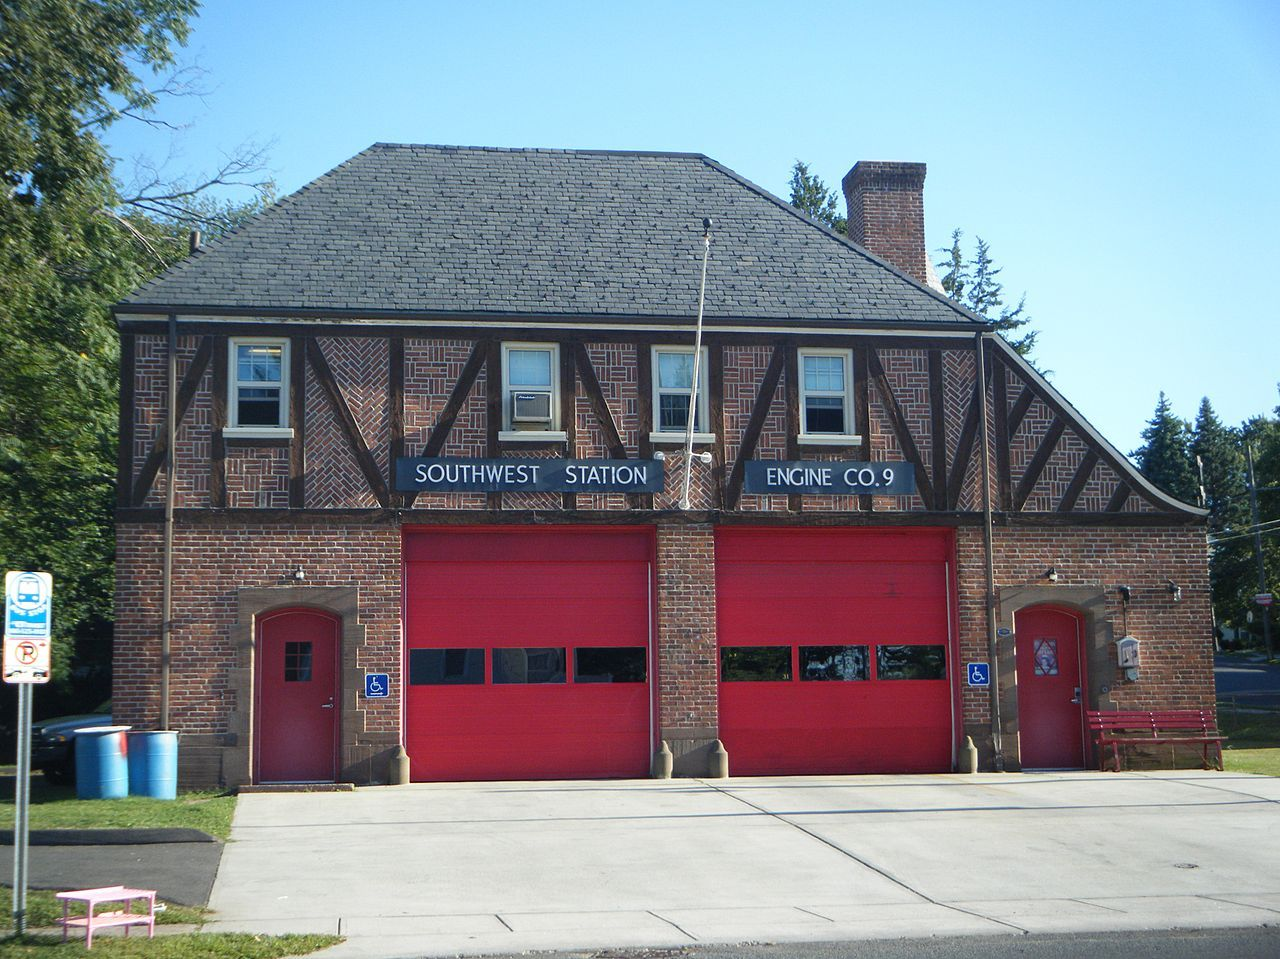 Engine Company 9 Fire Station in Hartford, Connecticut